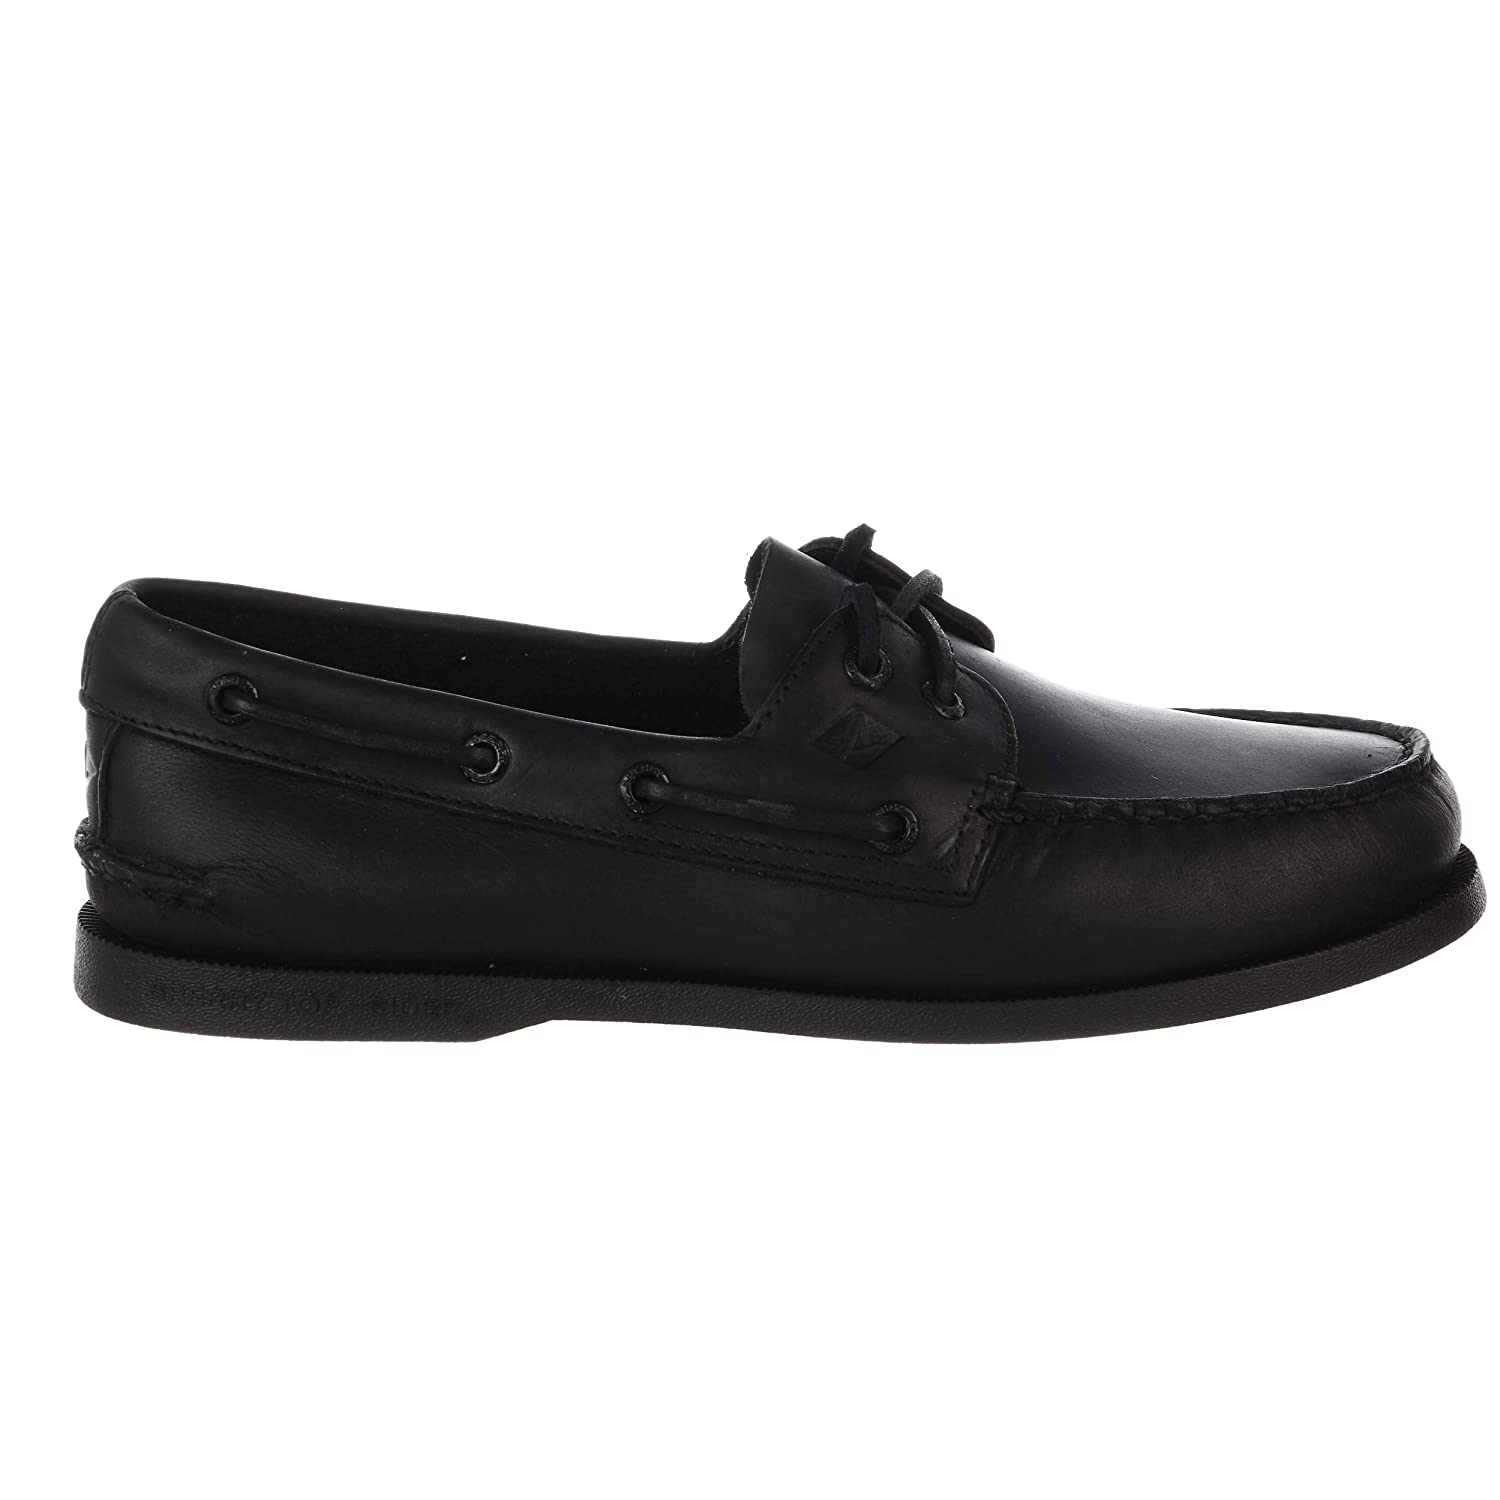 Sperry Top-Sider Men's Authentic Original Shoes 0195115